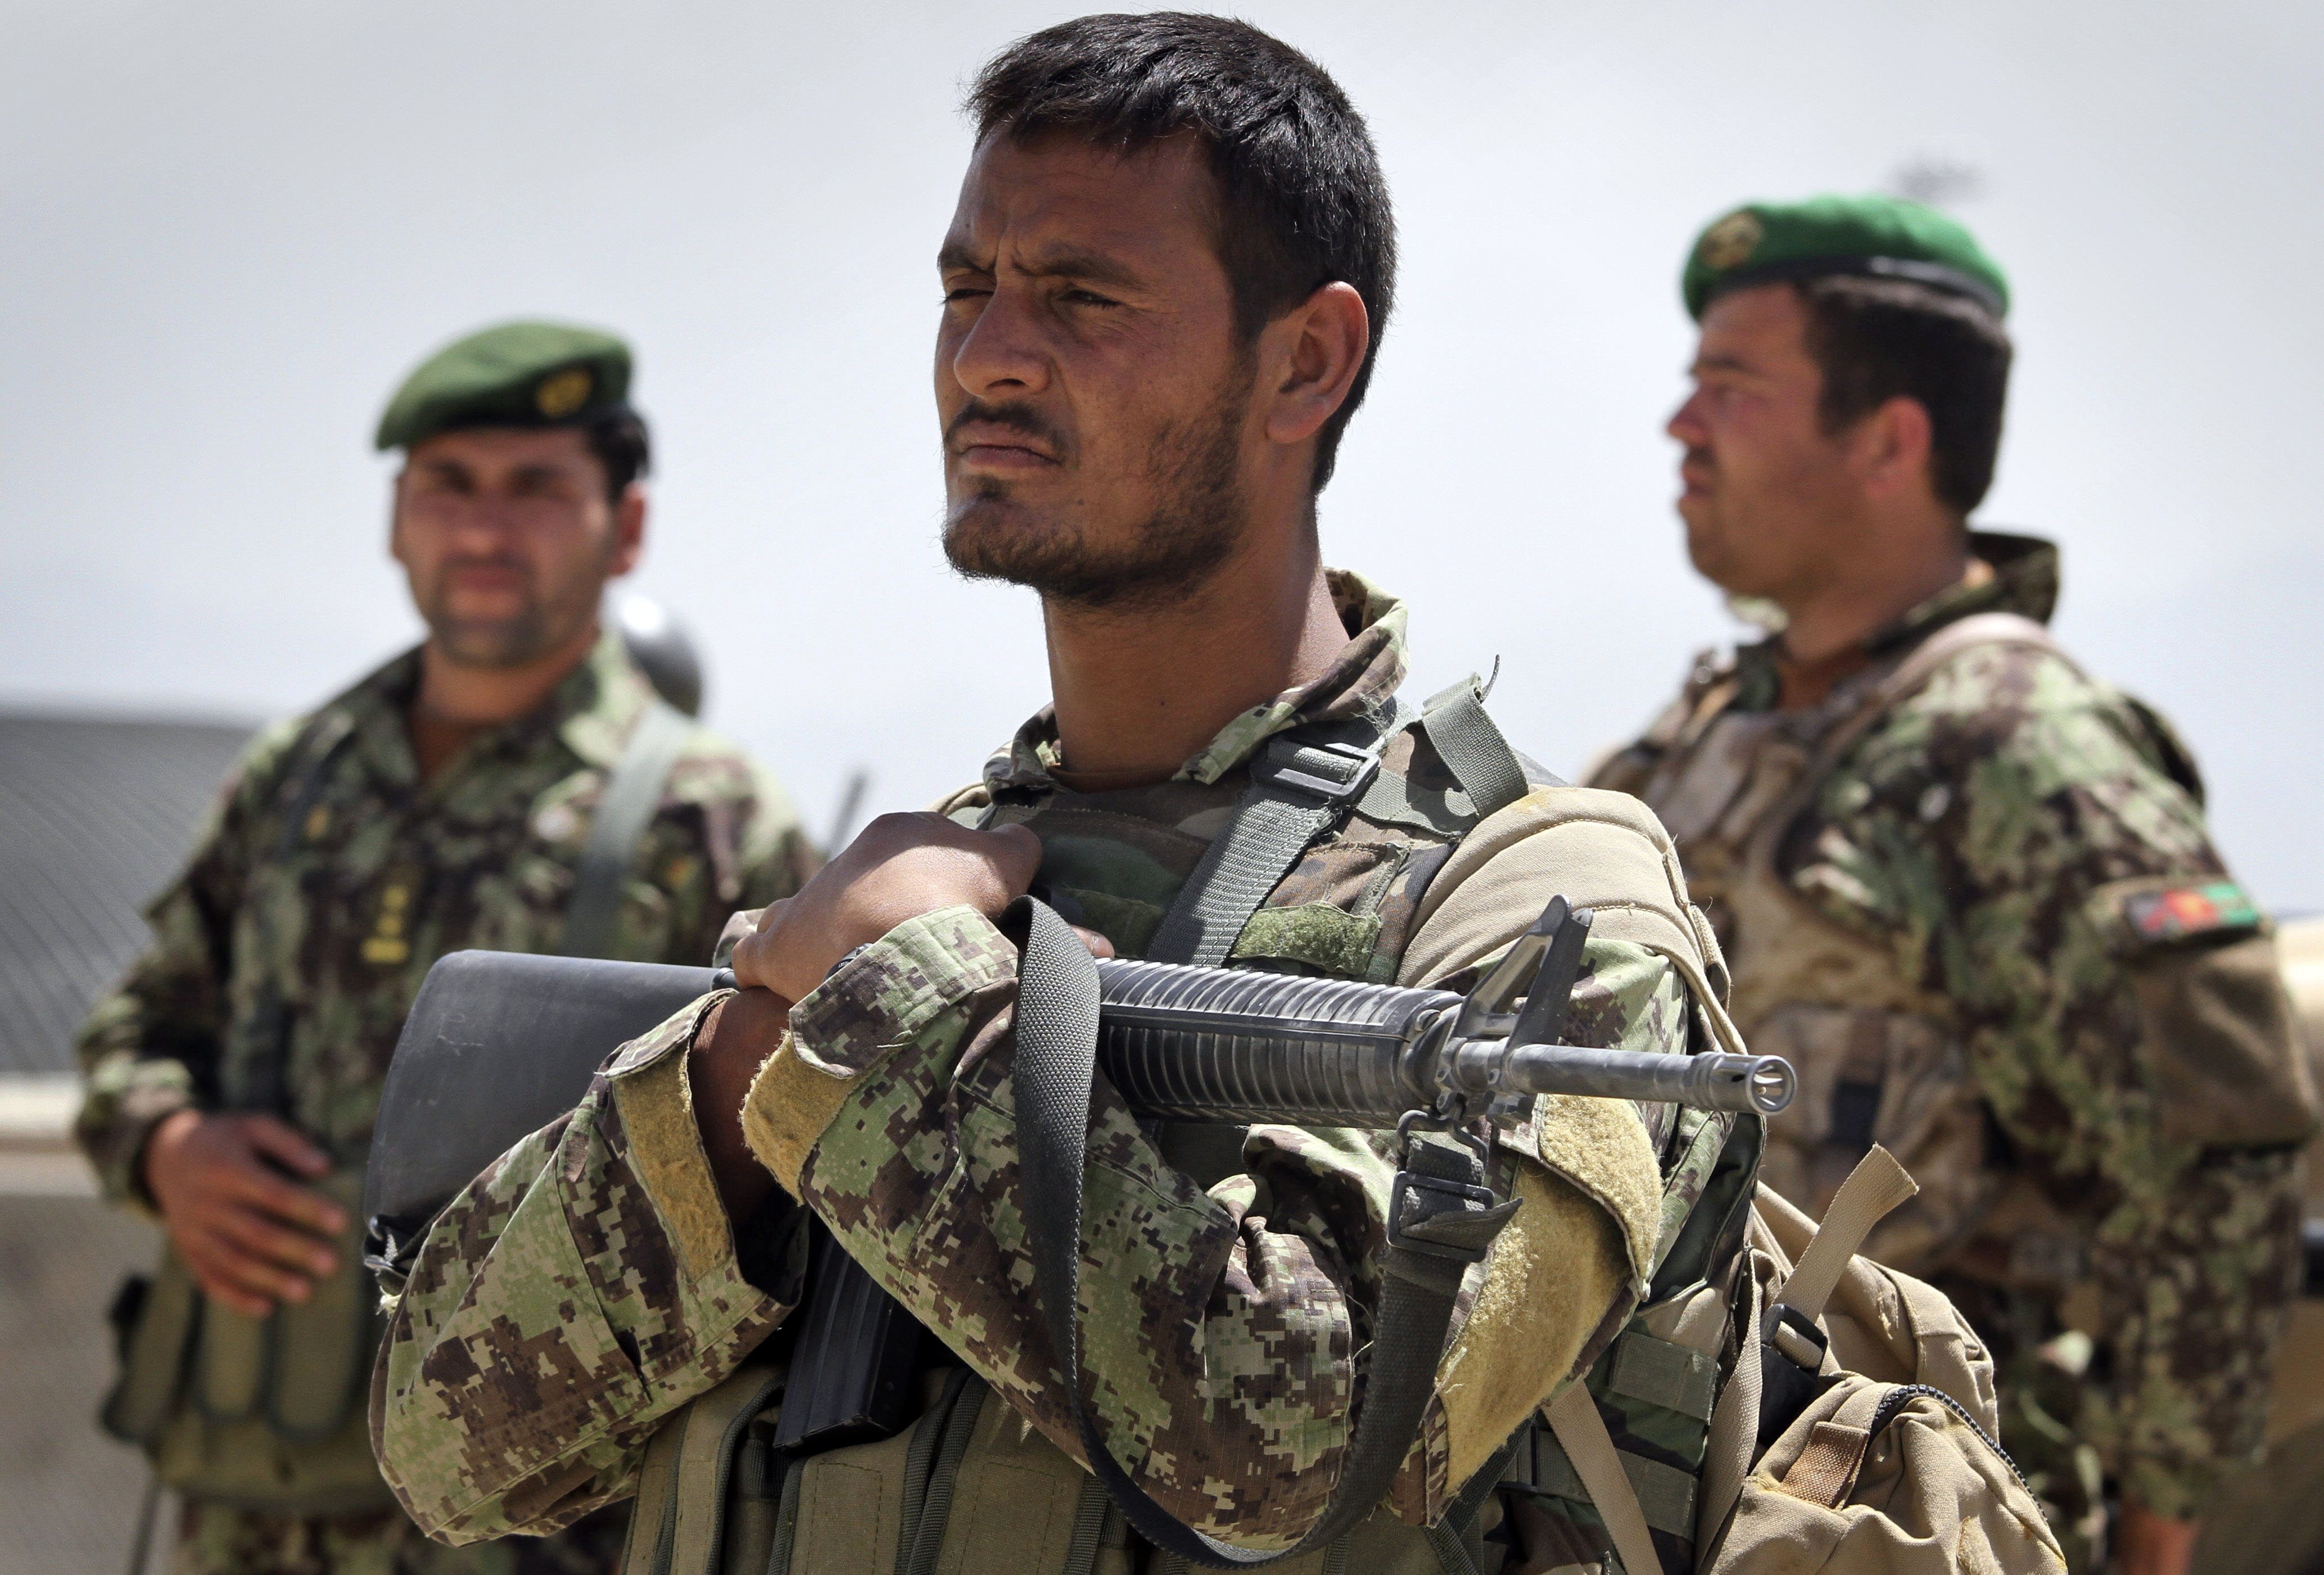 dating soldiers in afghanistan I have been dating a military man in afghanistan he has come a cross as a really nice person but i am confused that he is asking for me to money g.